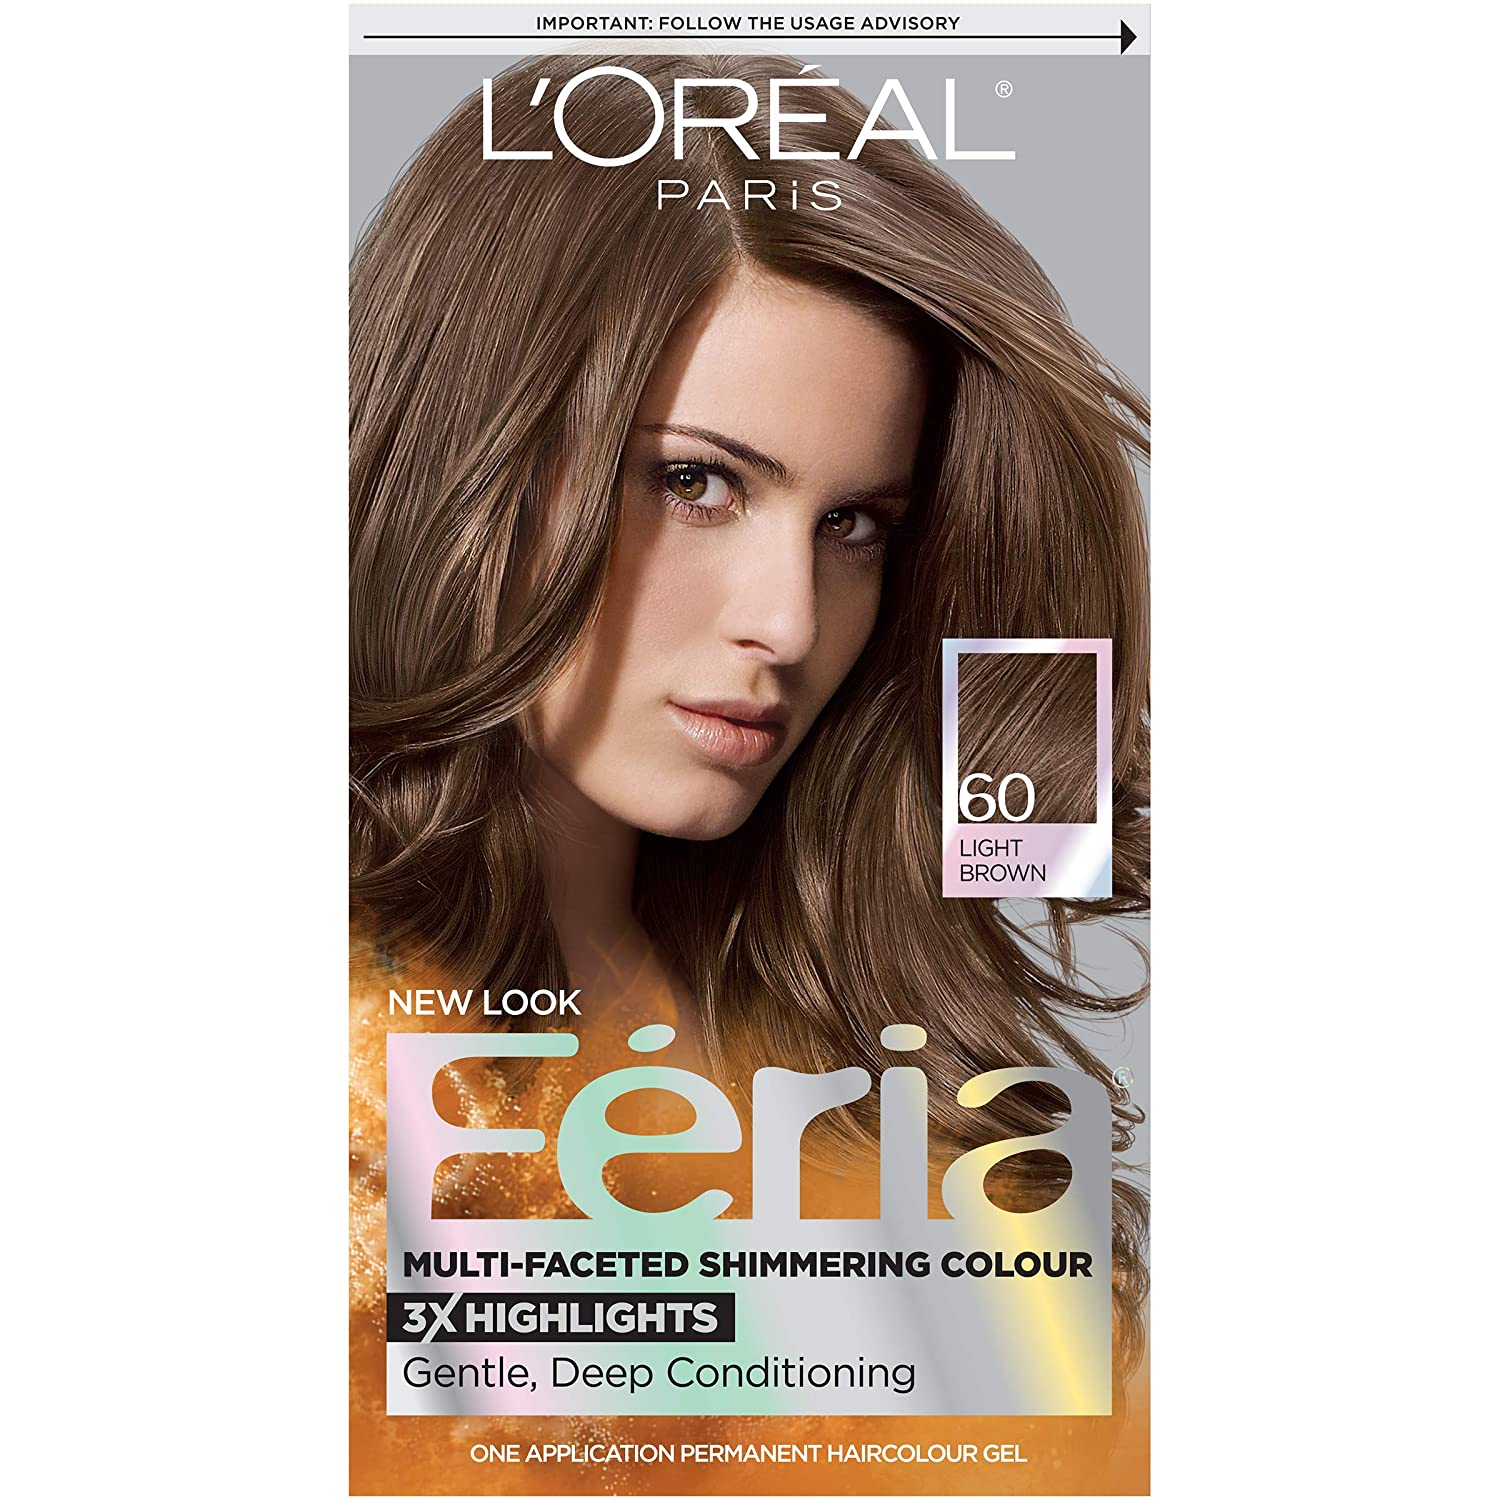 L'Oréal Paris Feria Multi-Faceted Shimmering Permanent Hair Color, 60 Crystal Brown (Light Brown), 1 kit Hair Dye